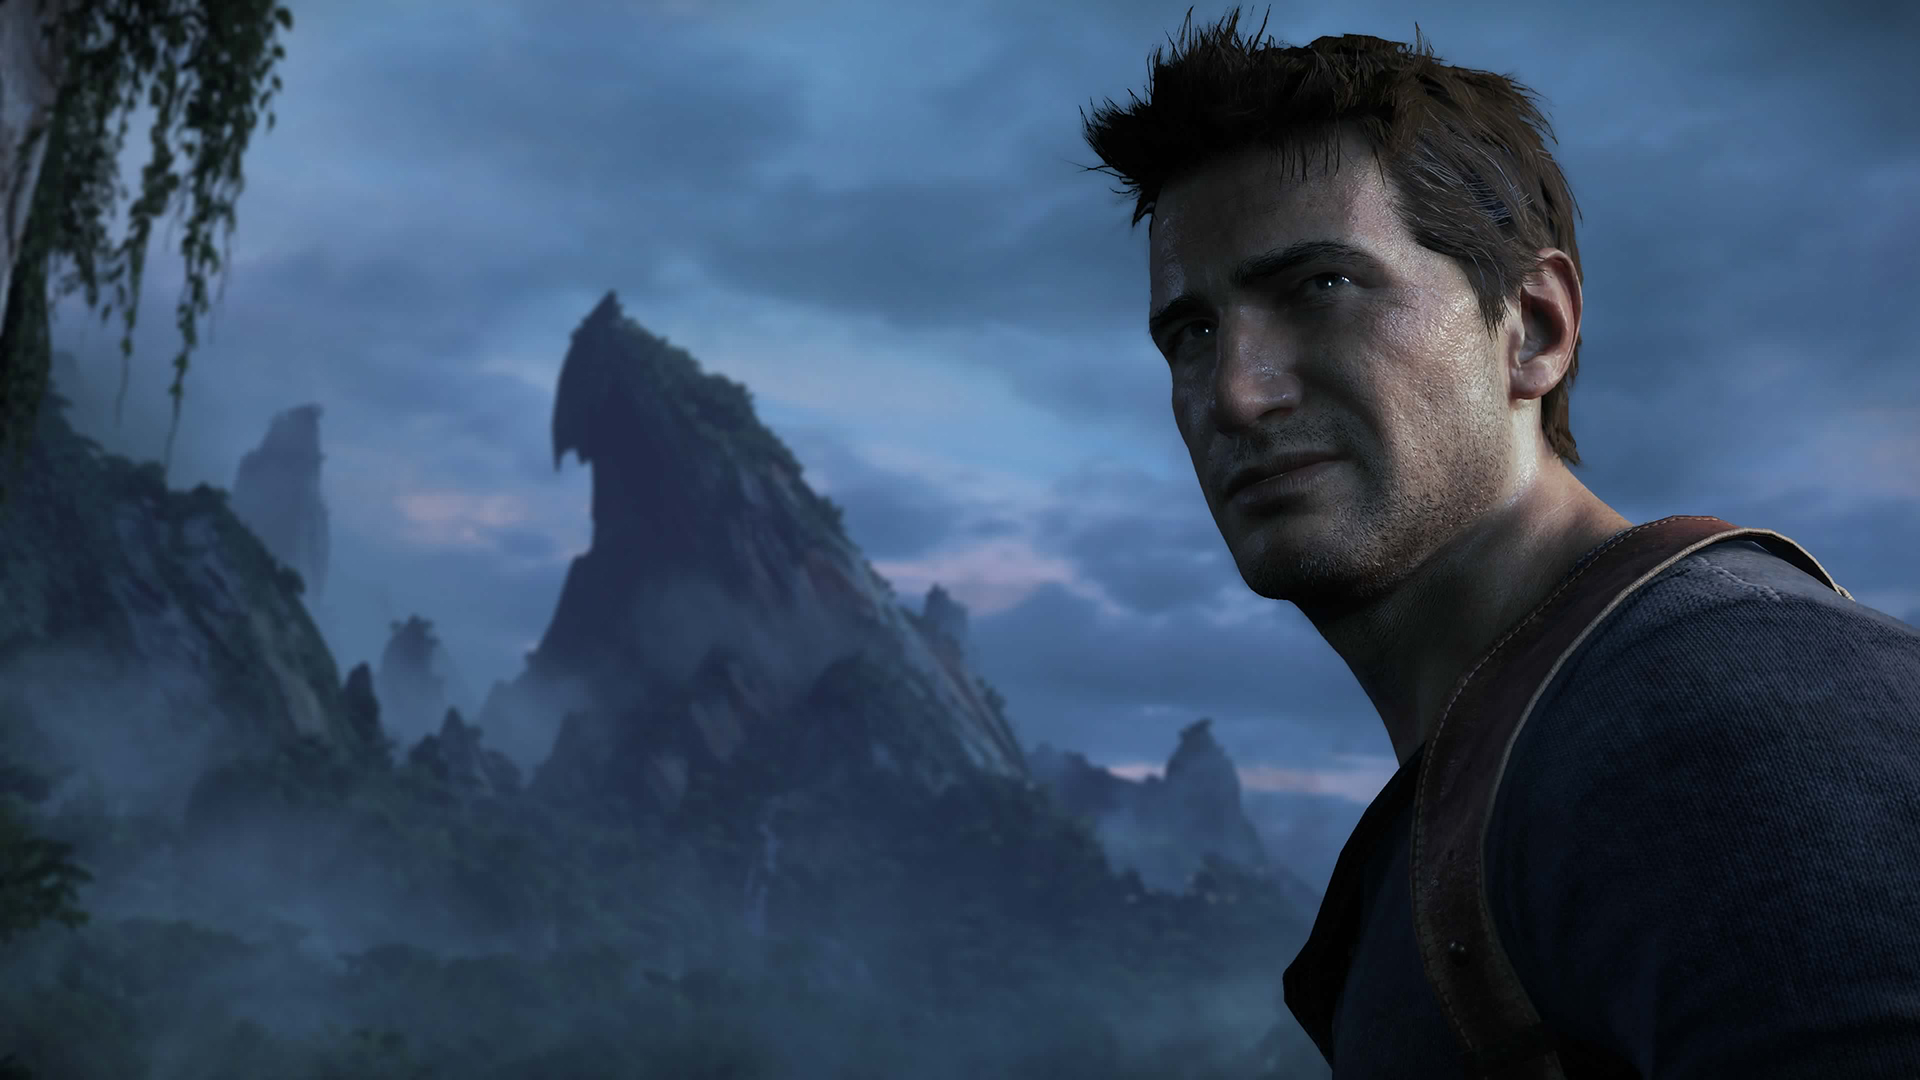 Uncharted 4 Recording New Mo Cap Despite Having Wrapped